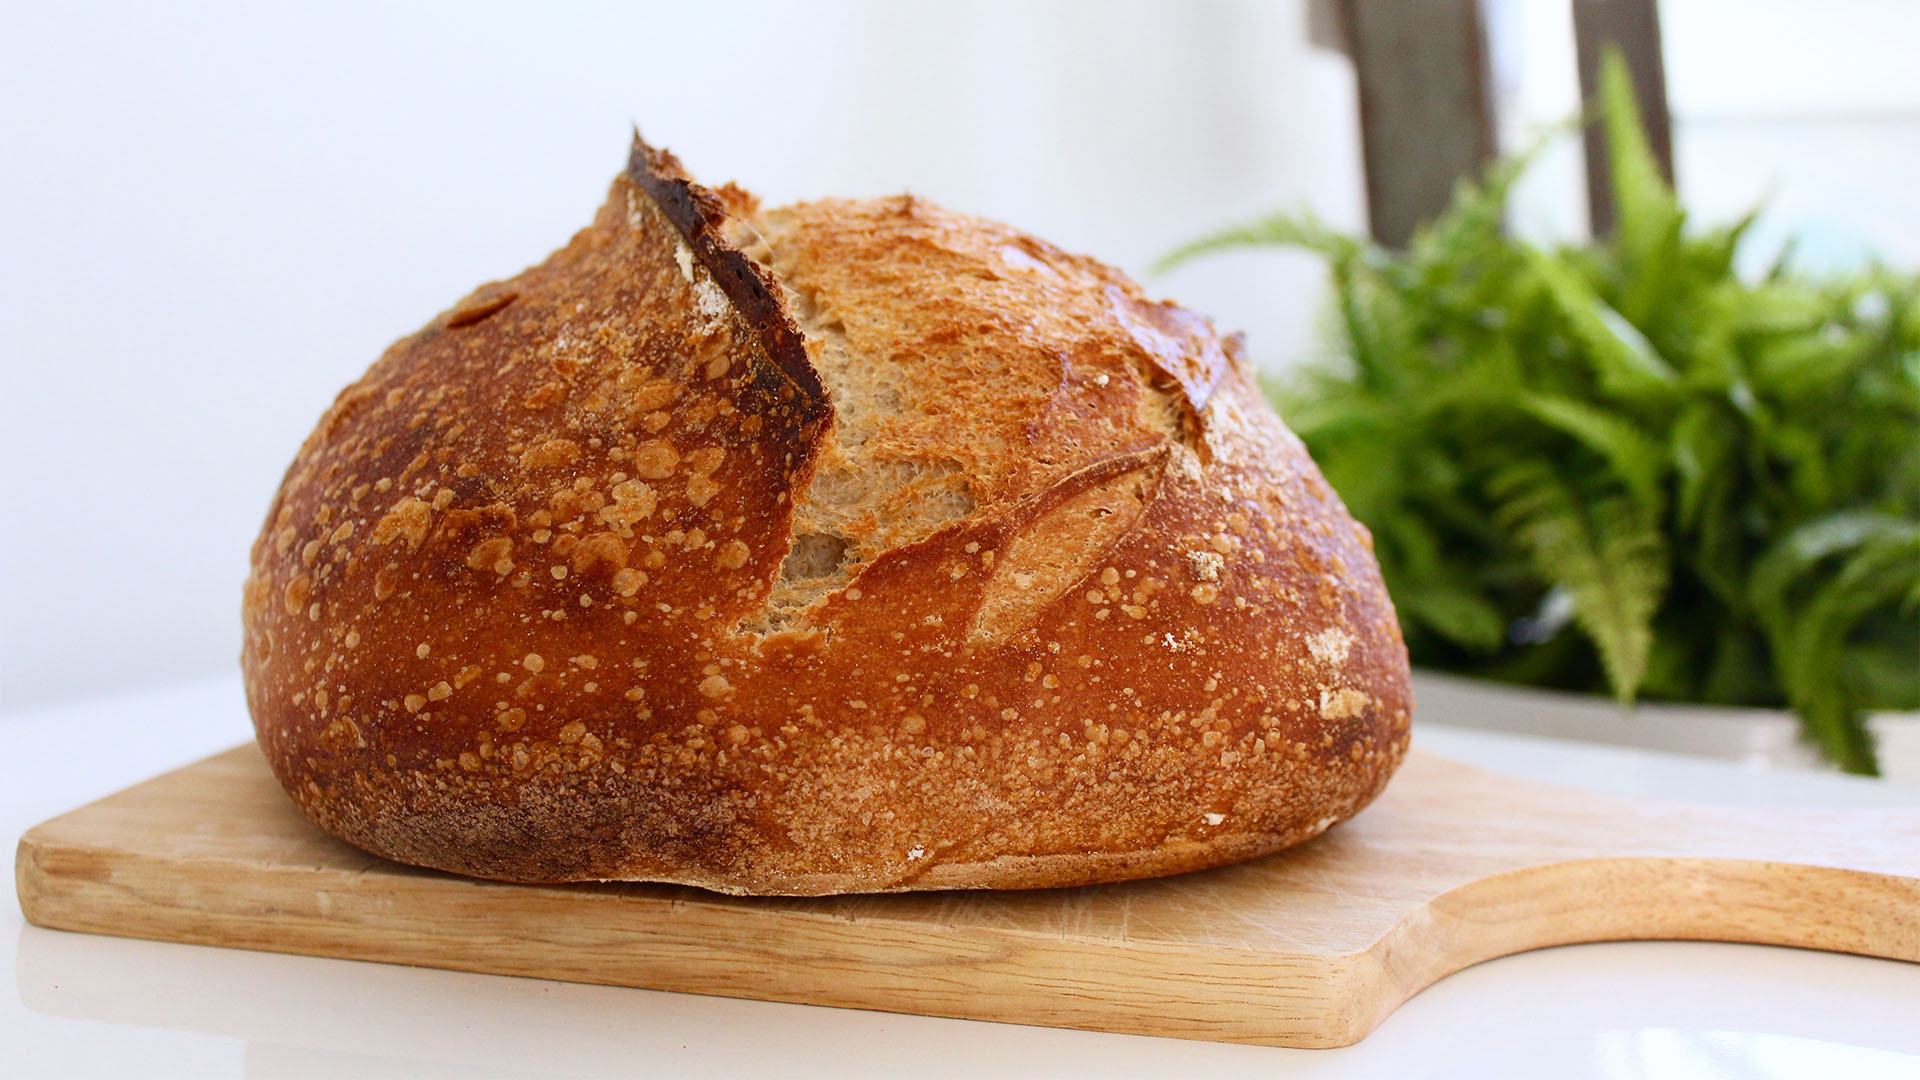 Make freshly baked bread with everyday ingredients